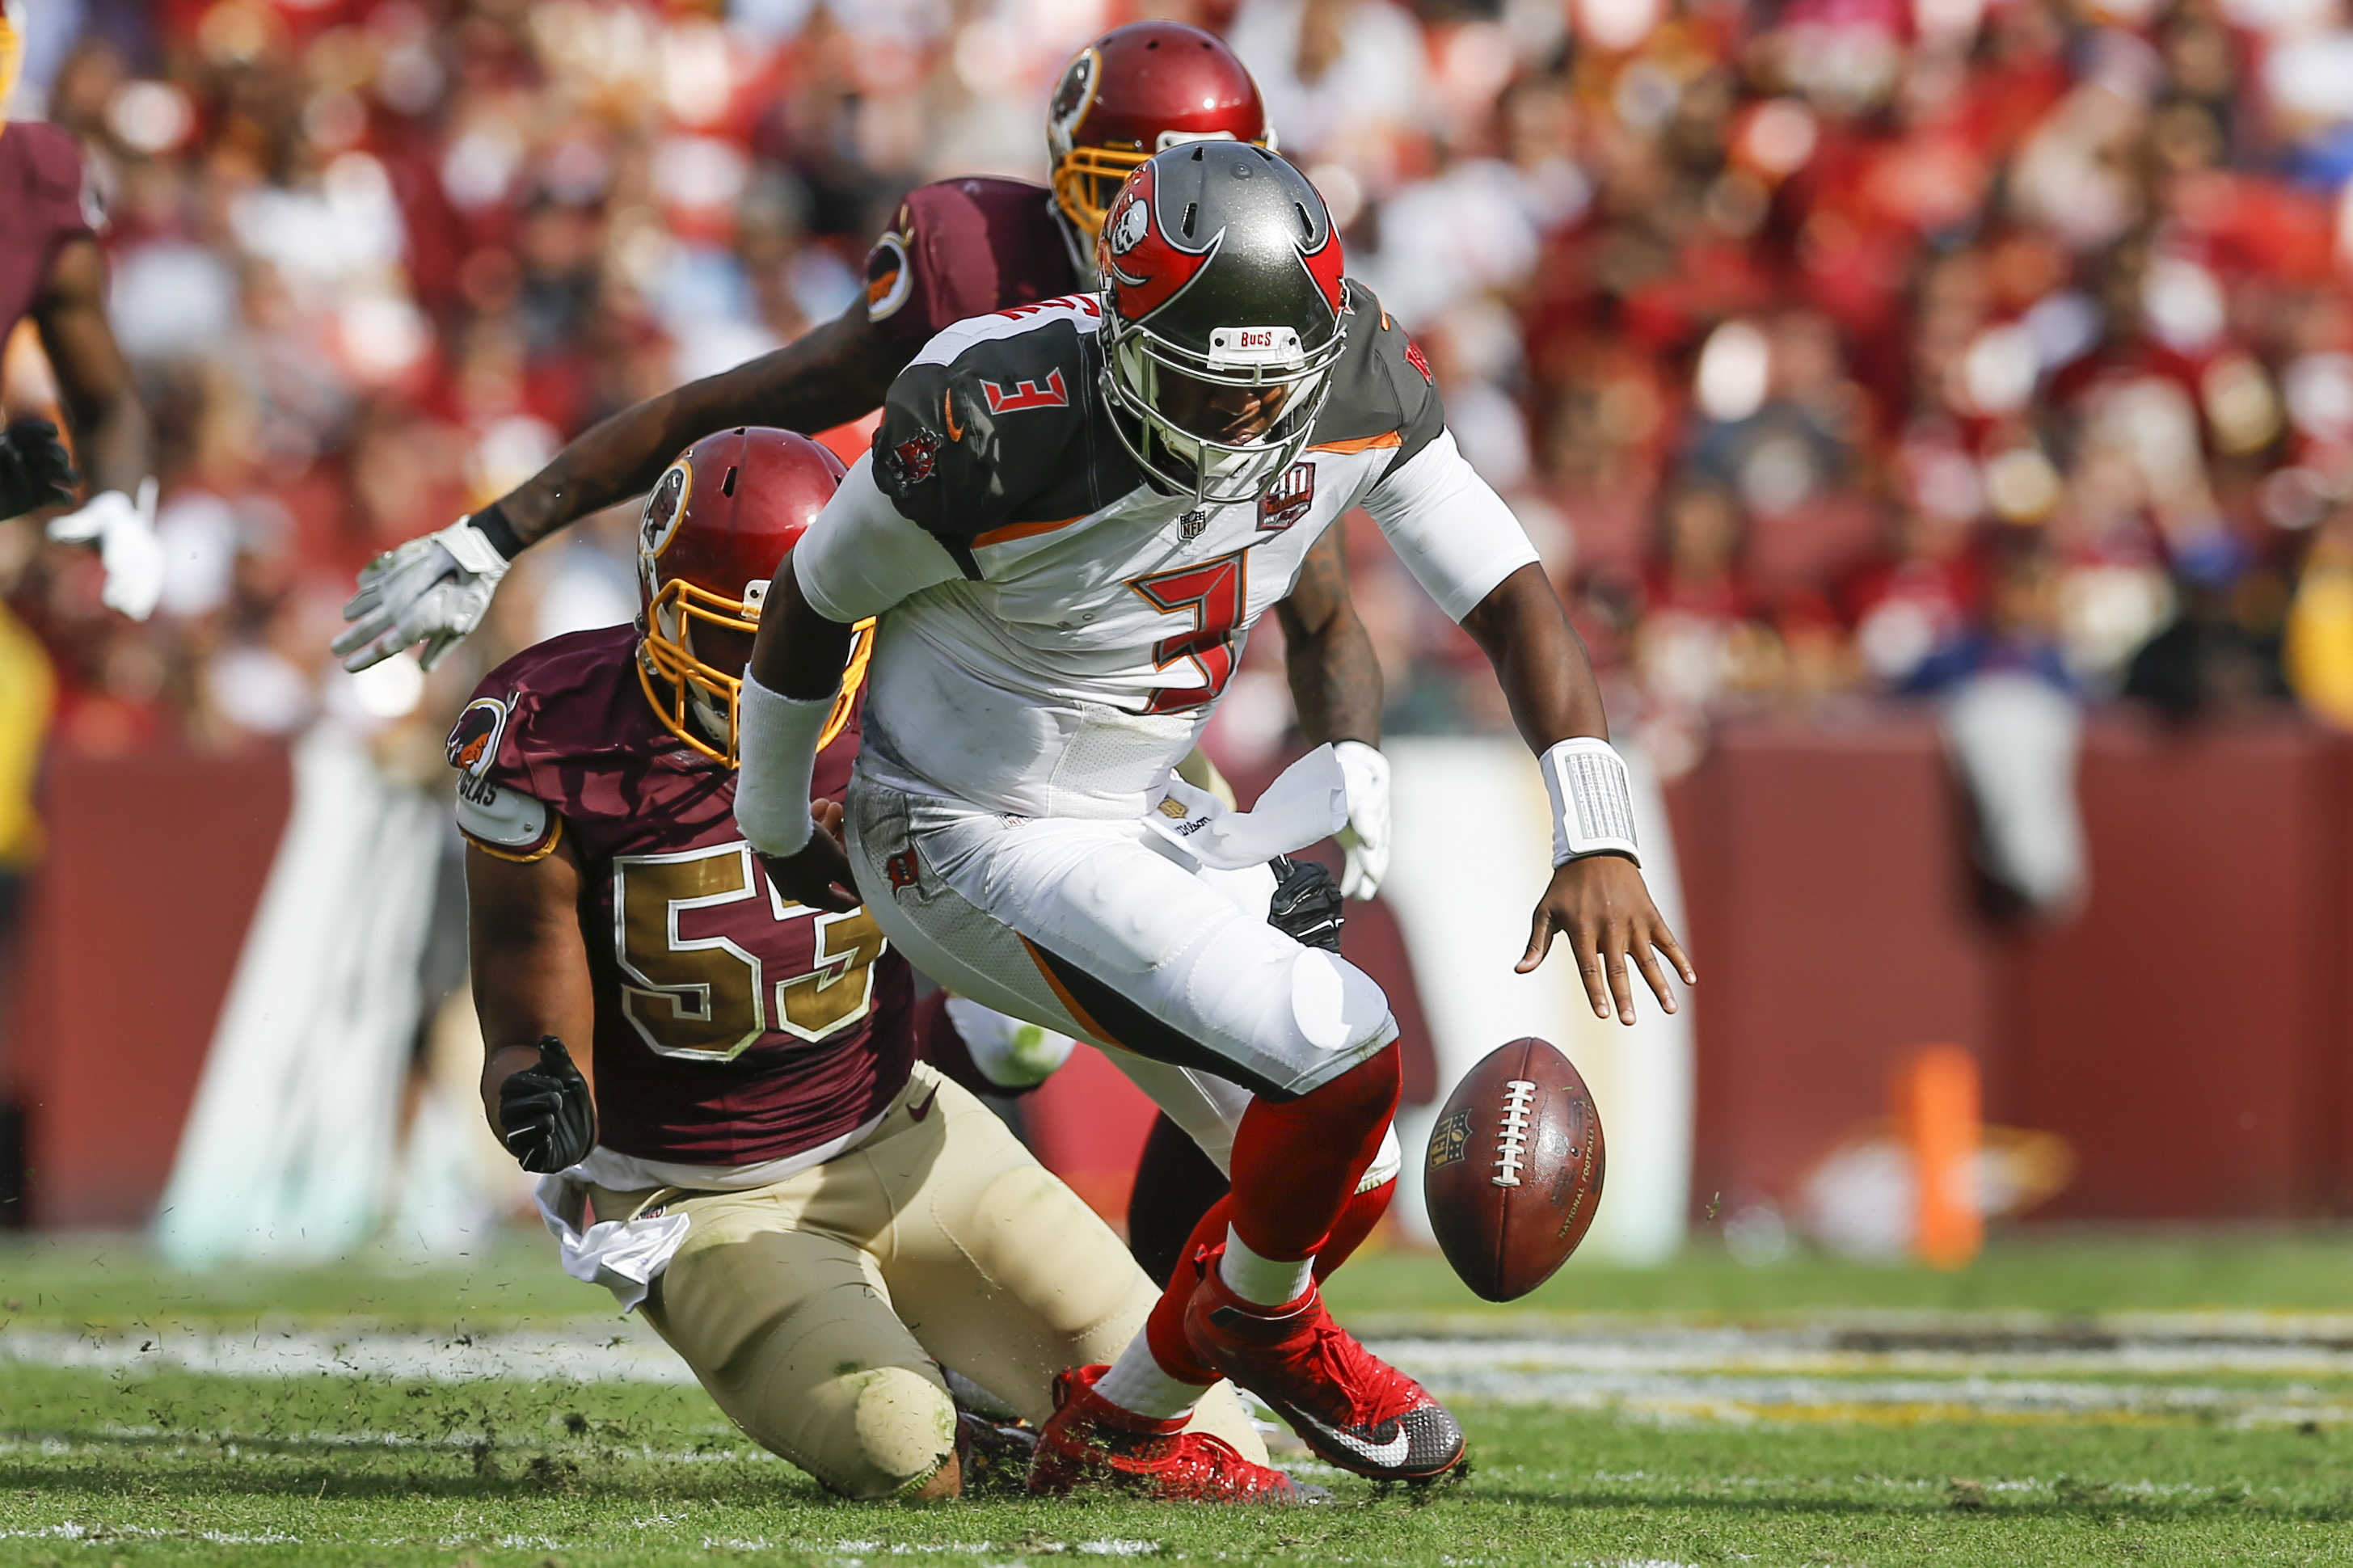 Redskins, Buccaneers game rescheduled due to severe weather in Florida